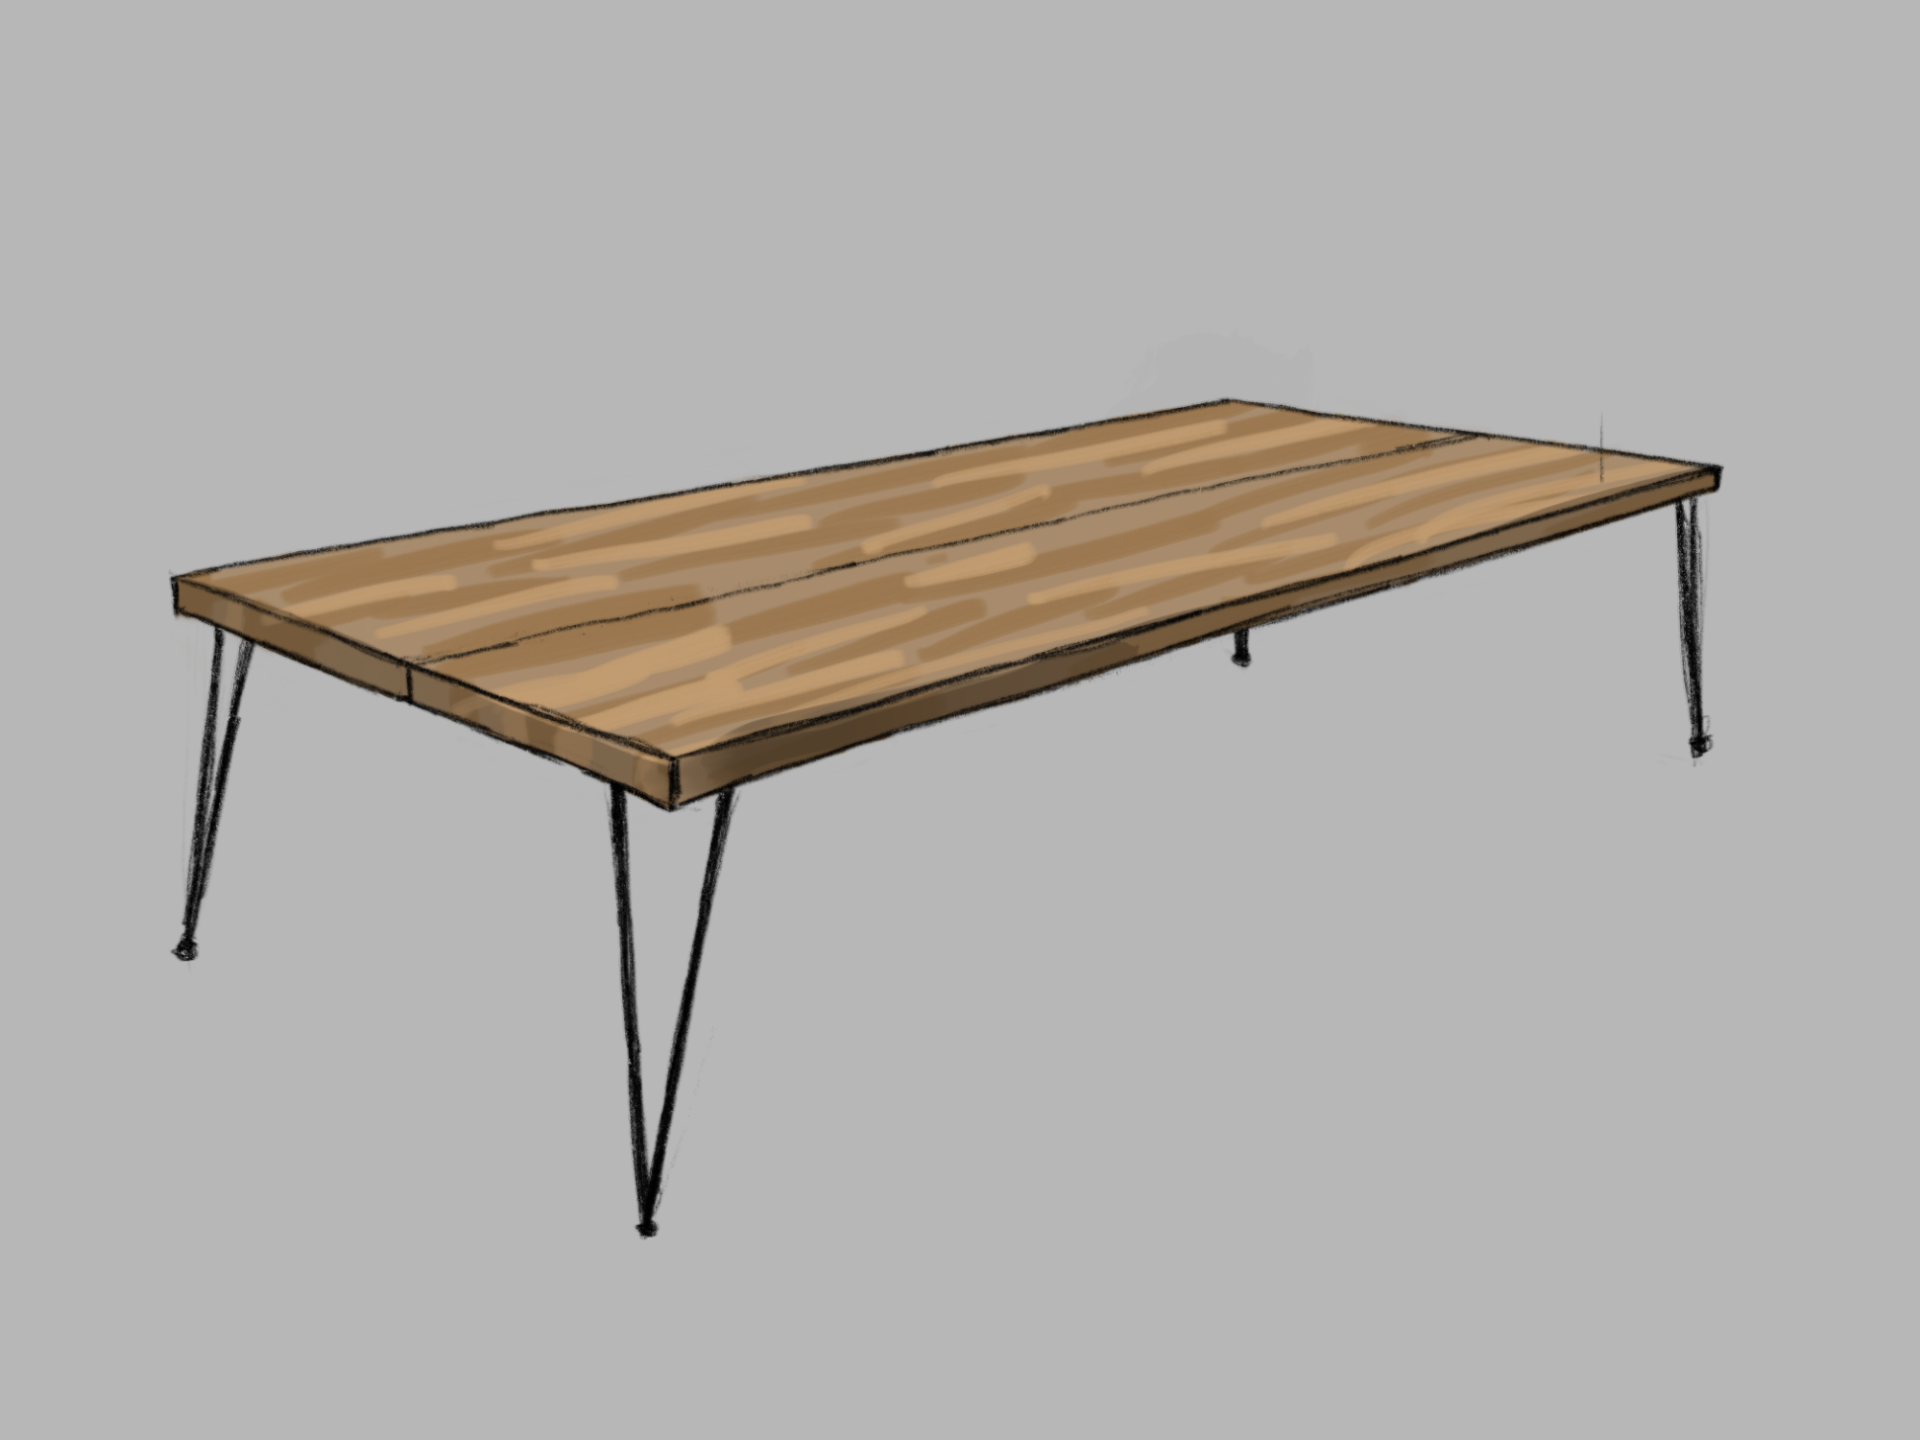 Kitchen_Table_160820_231851.png?mtime=20